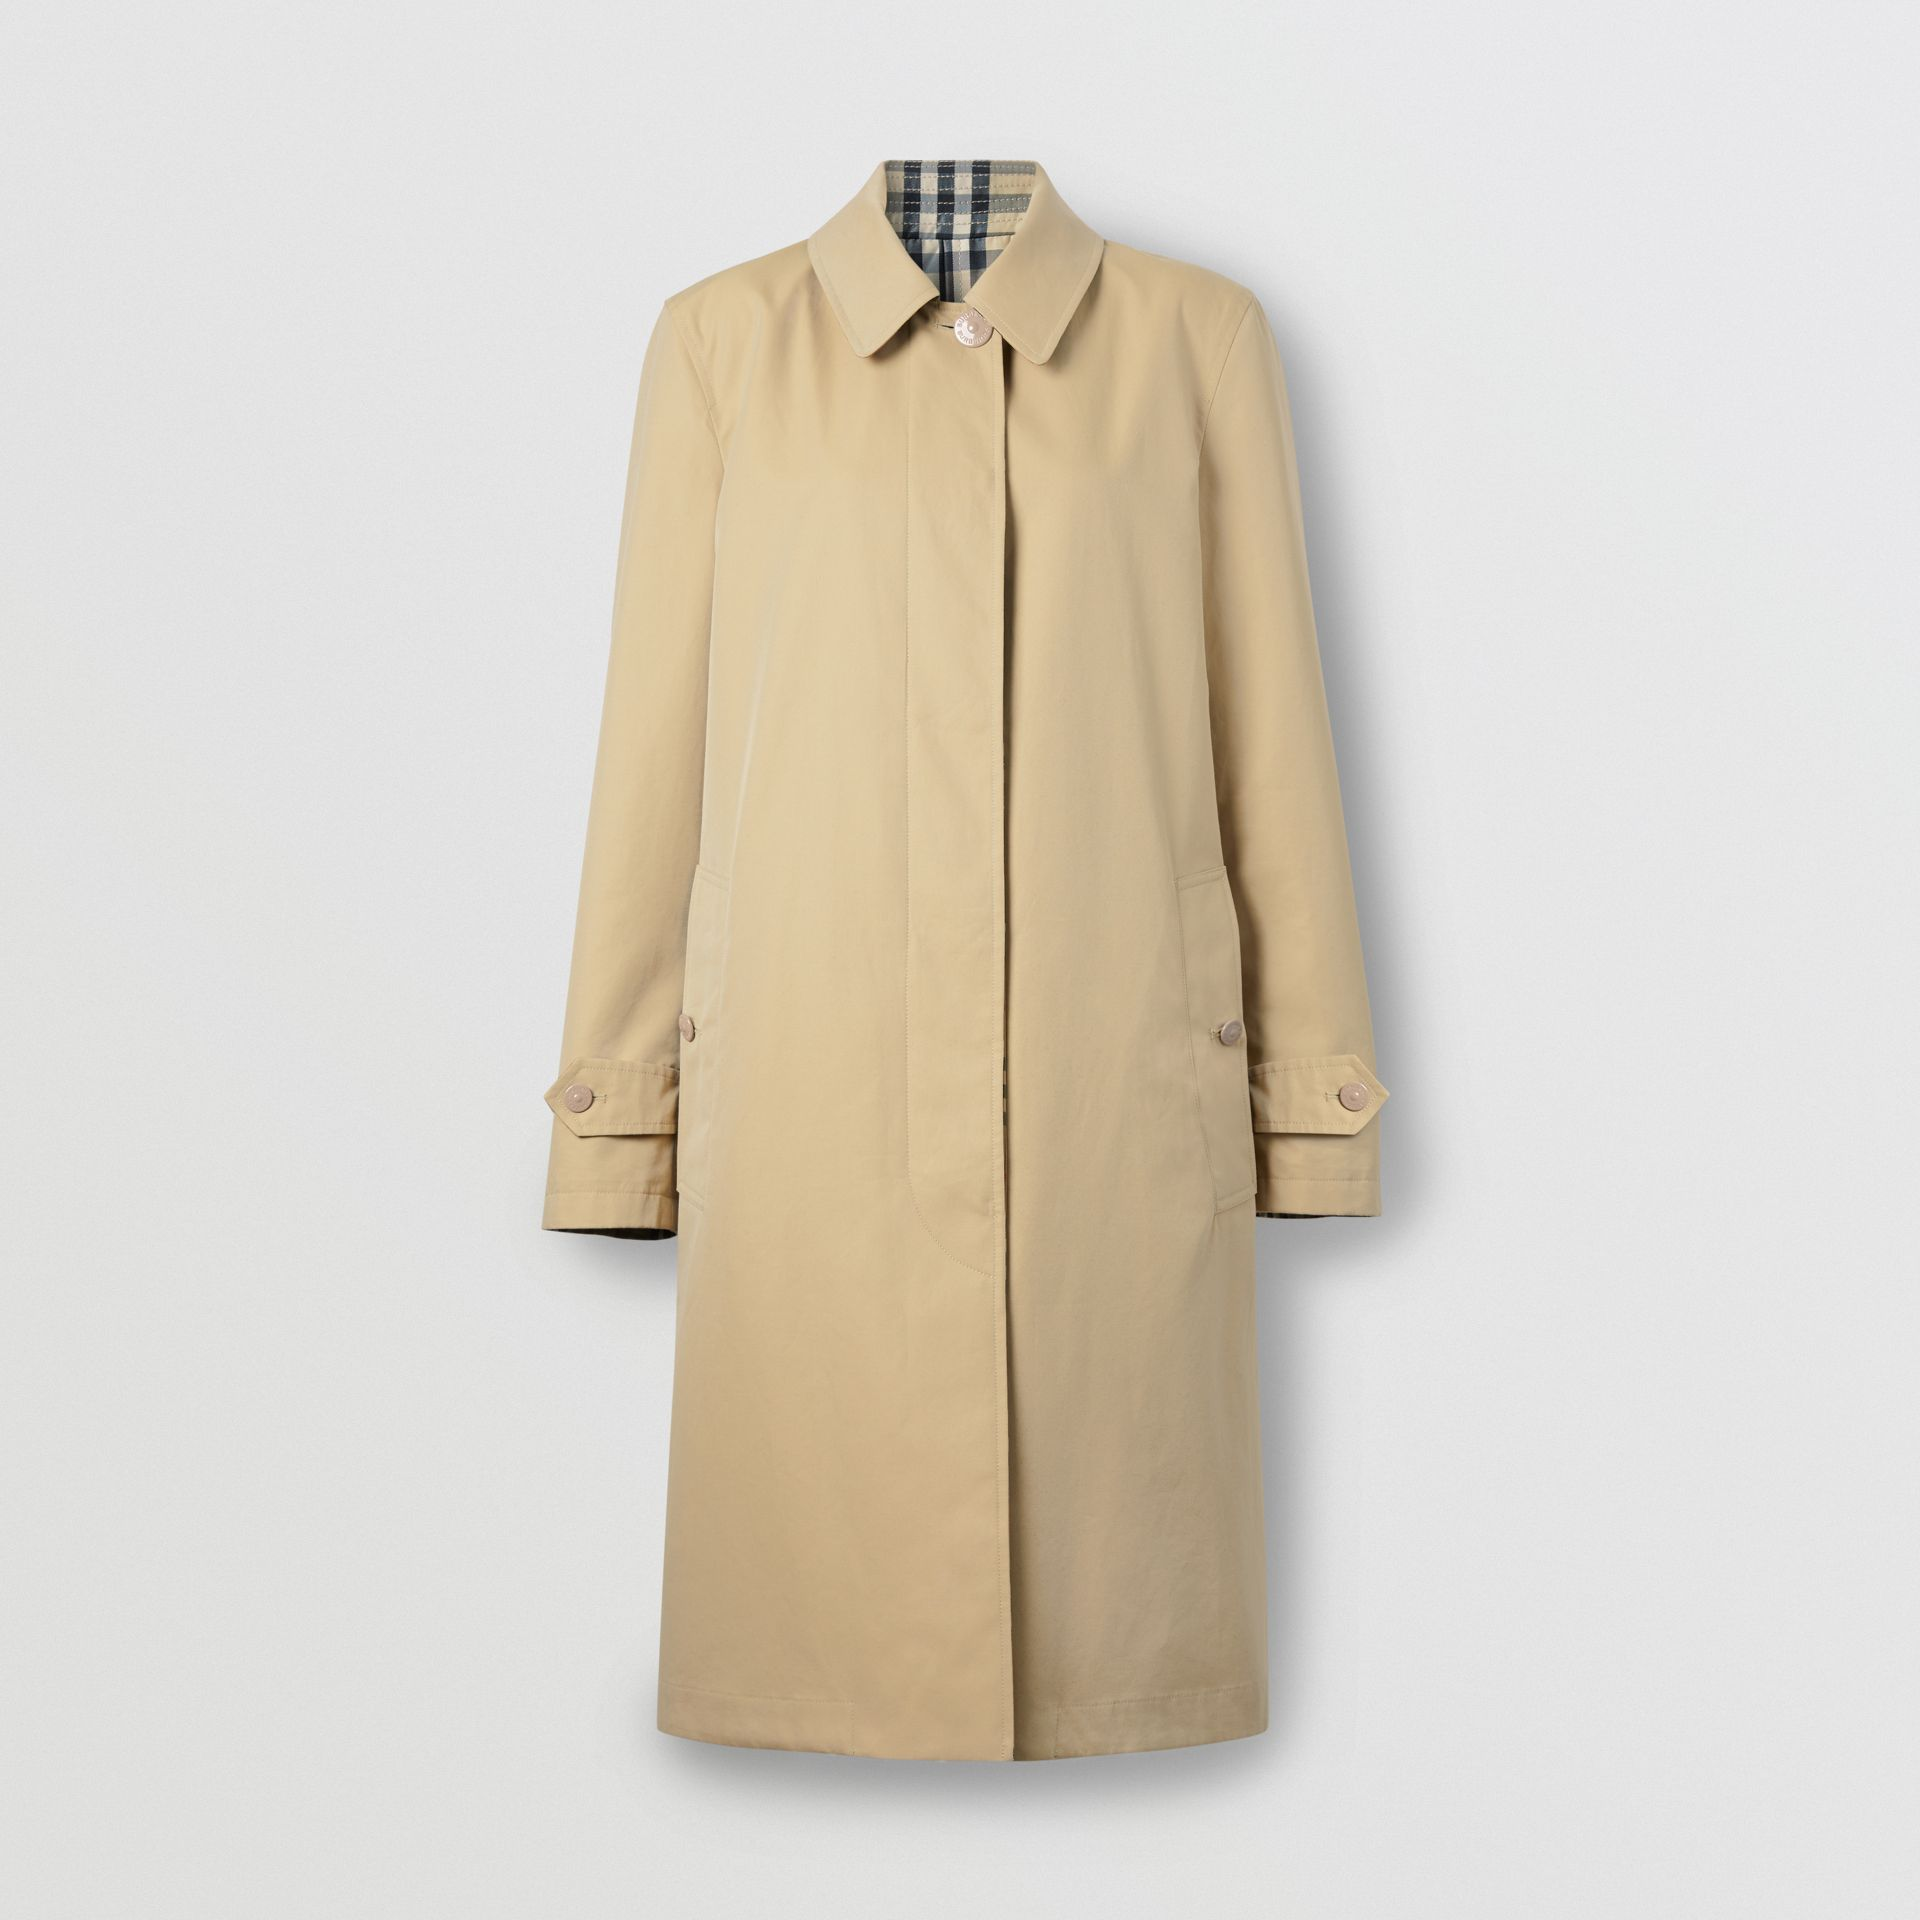 Reversible Cotton and Recycled Polyester Car Coat in Honey - Women | Burberry - gallery image 2